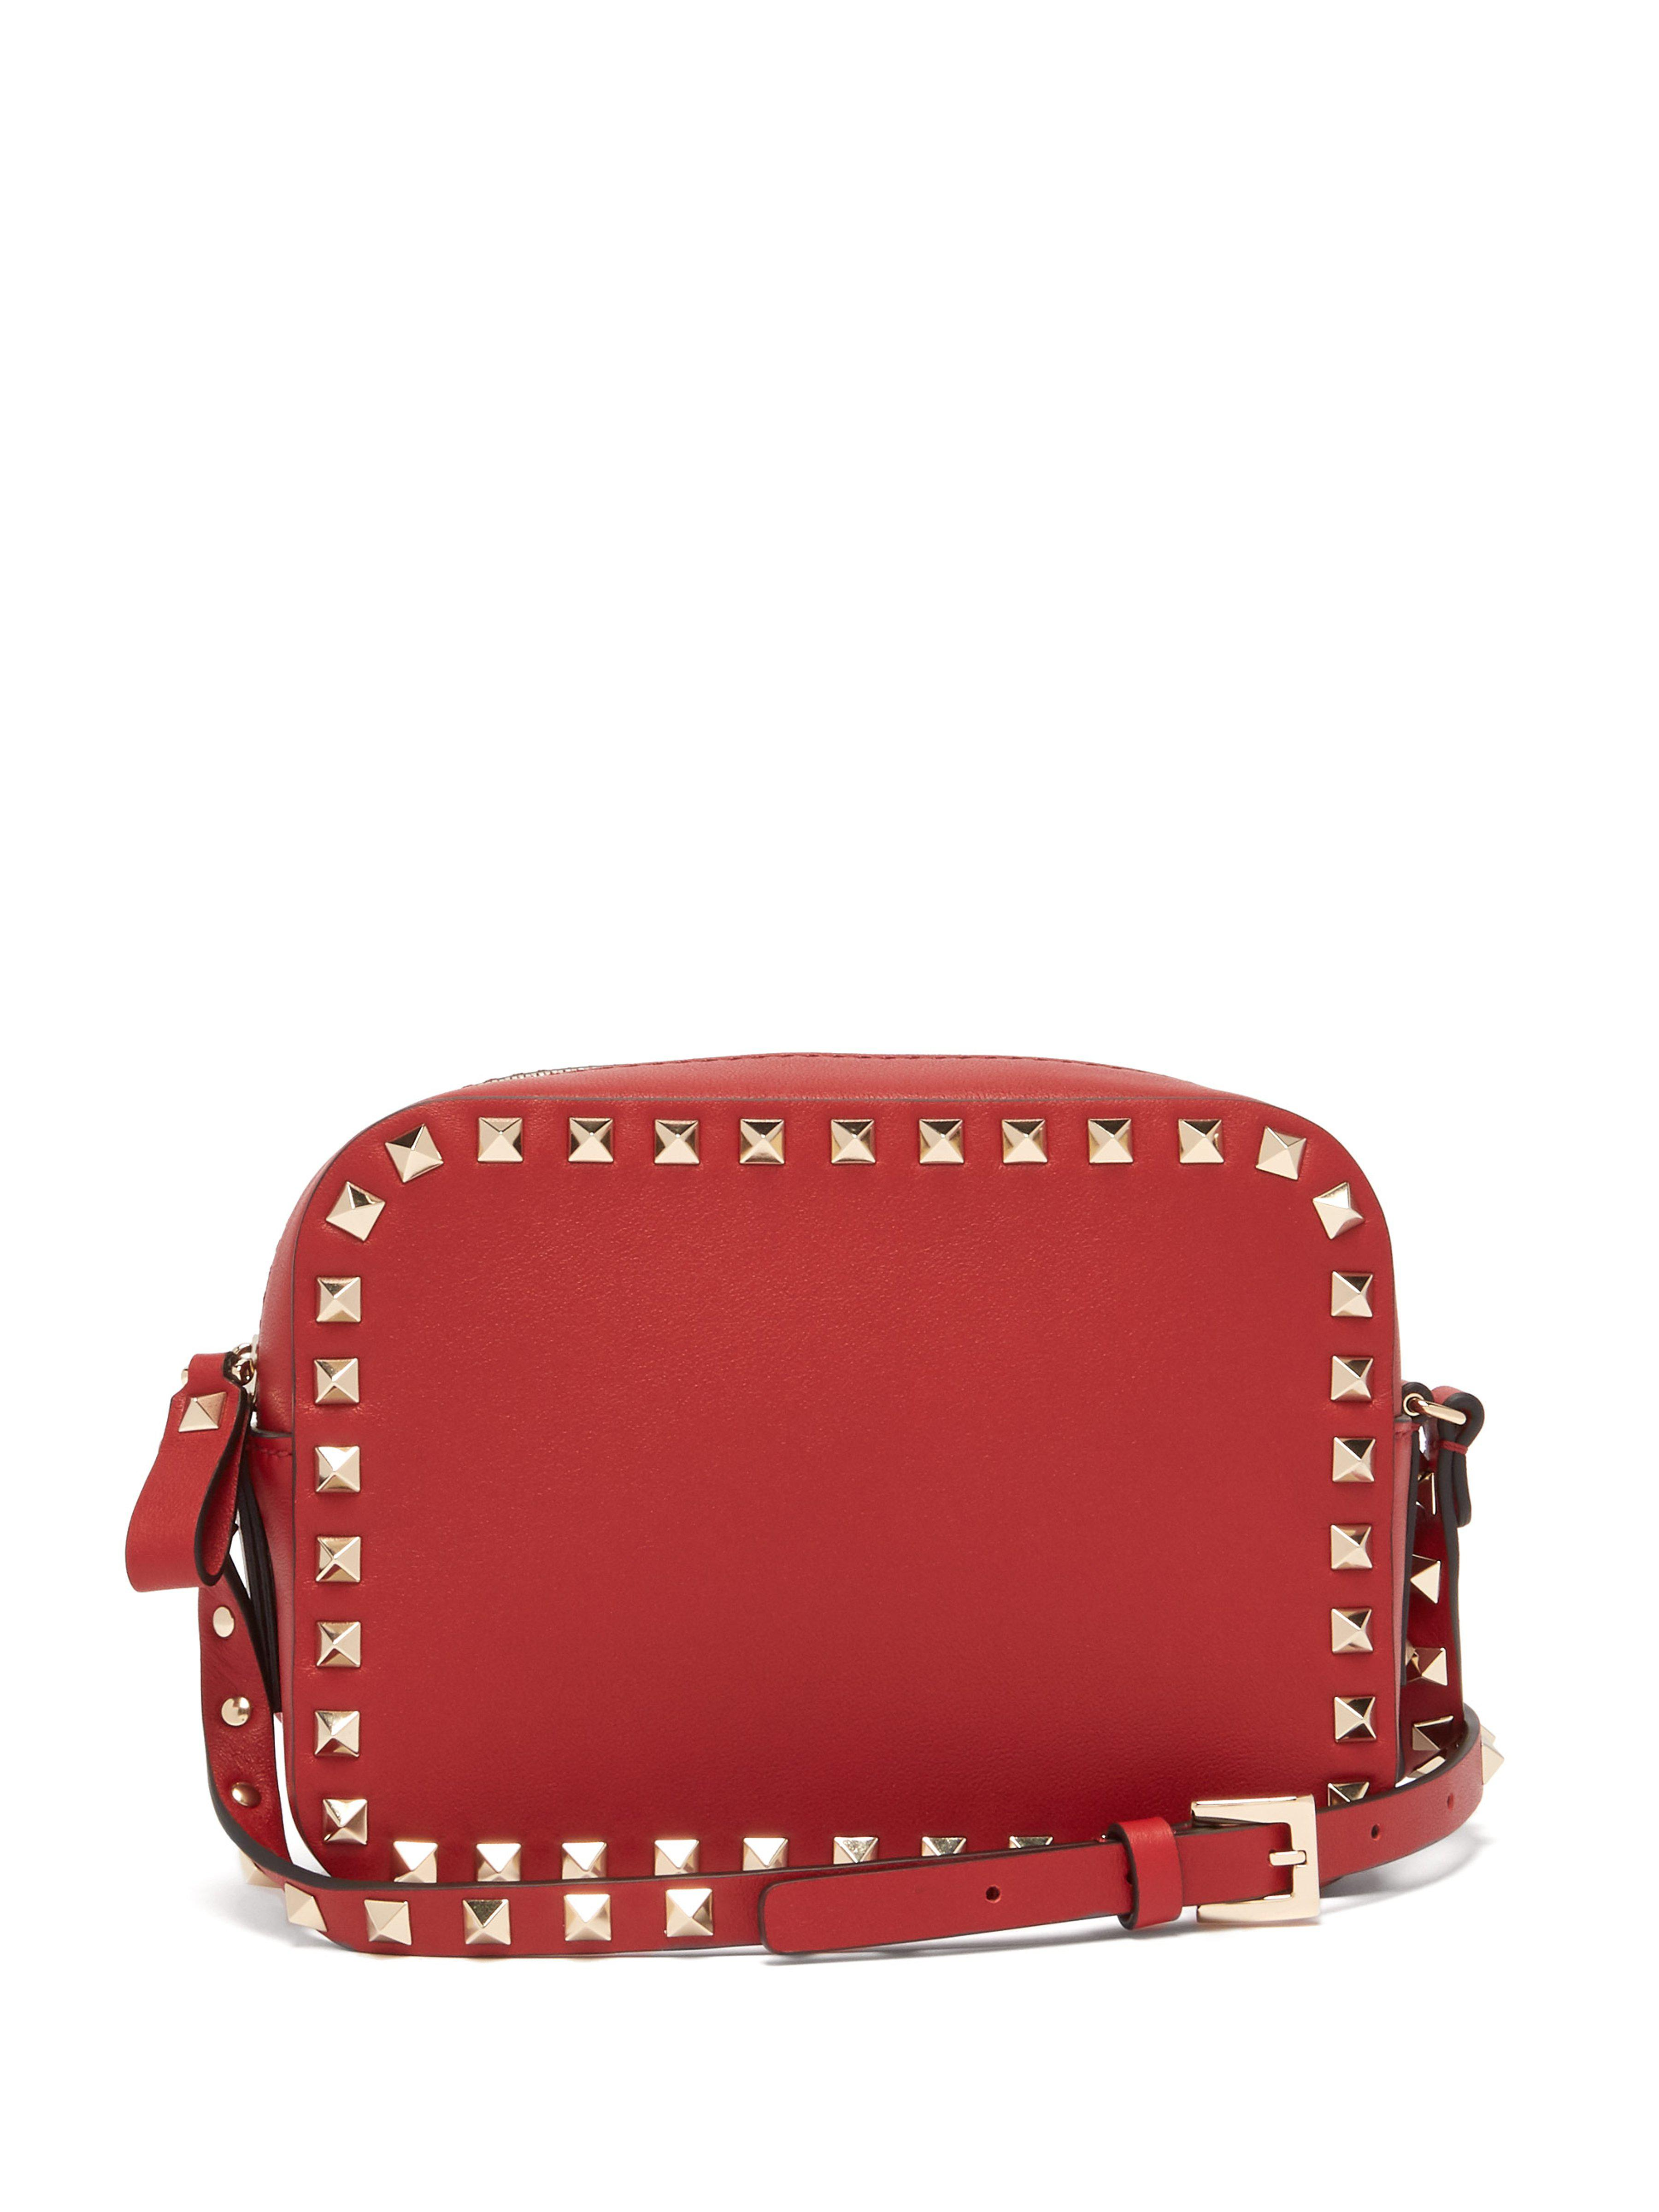 c5d1d6b41ab8 Valentino Rockstud Camera Leather Cross Body Bag in Red - Save 37 ...